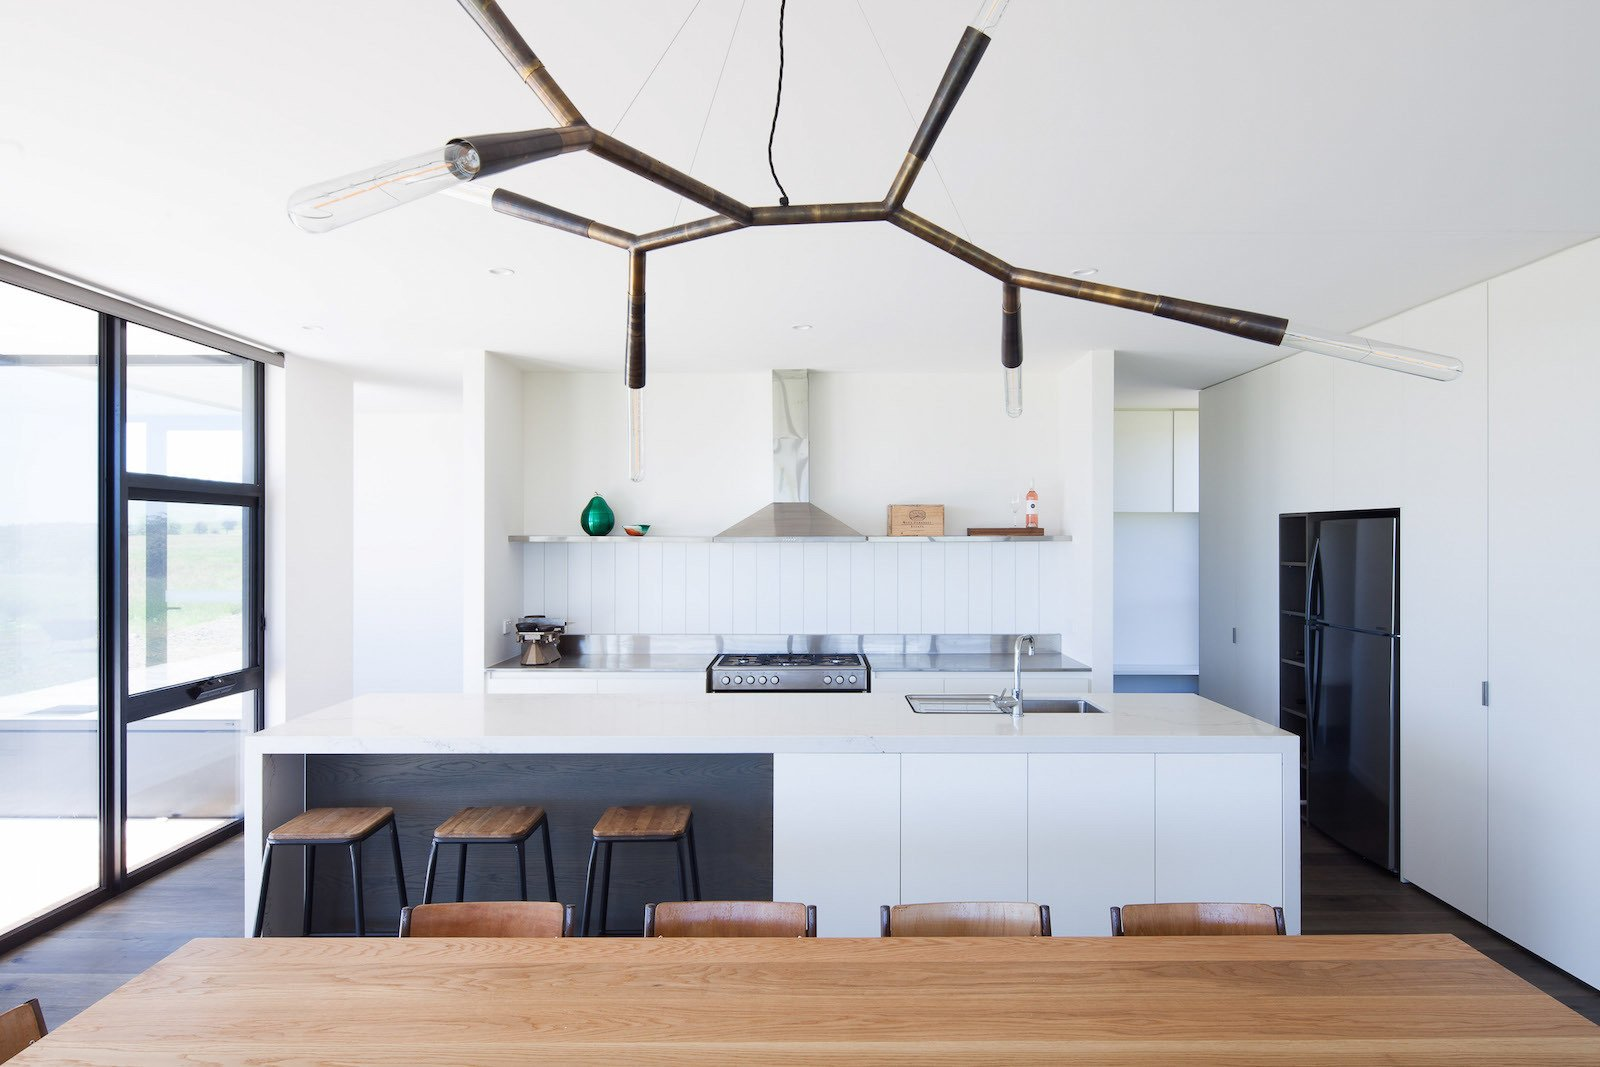 Dining Room, Pendant Lighting, Dark Hardwood Floor, Chair, and Table  Photo 7 of 10 in Two Families Embrace Off-Grid Living in This Sustainable Prefab Home